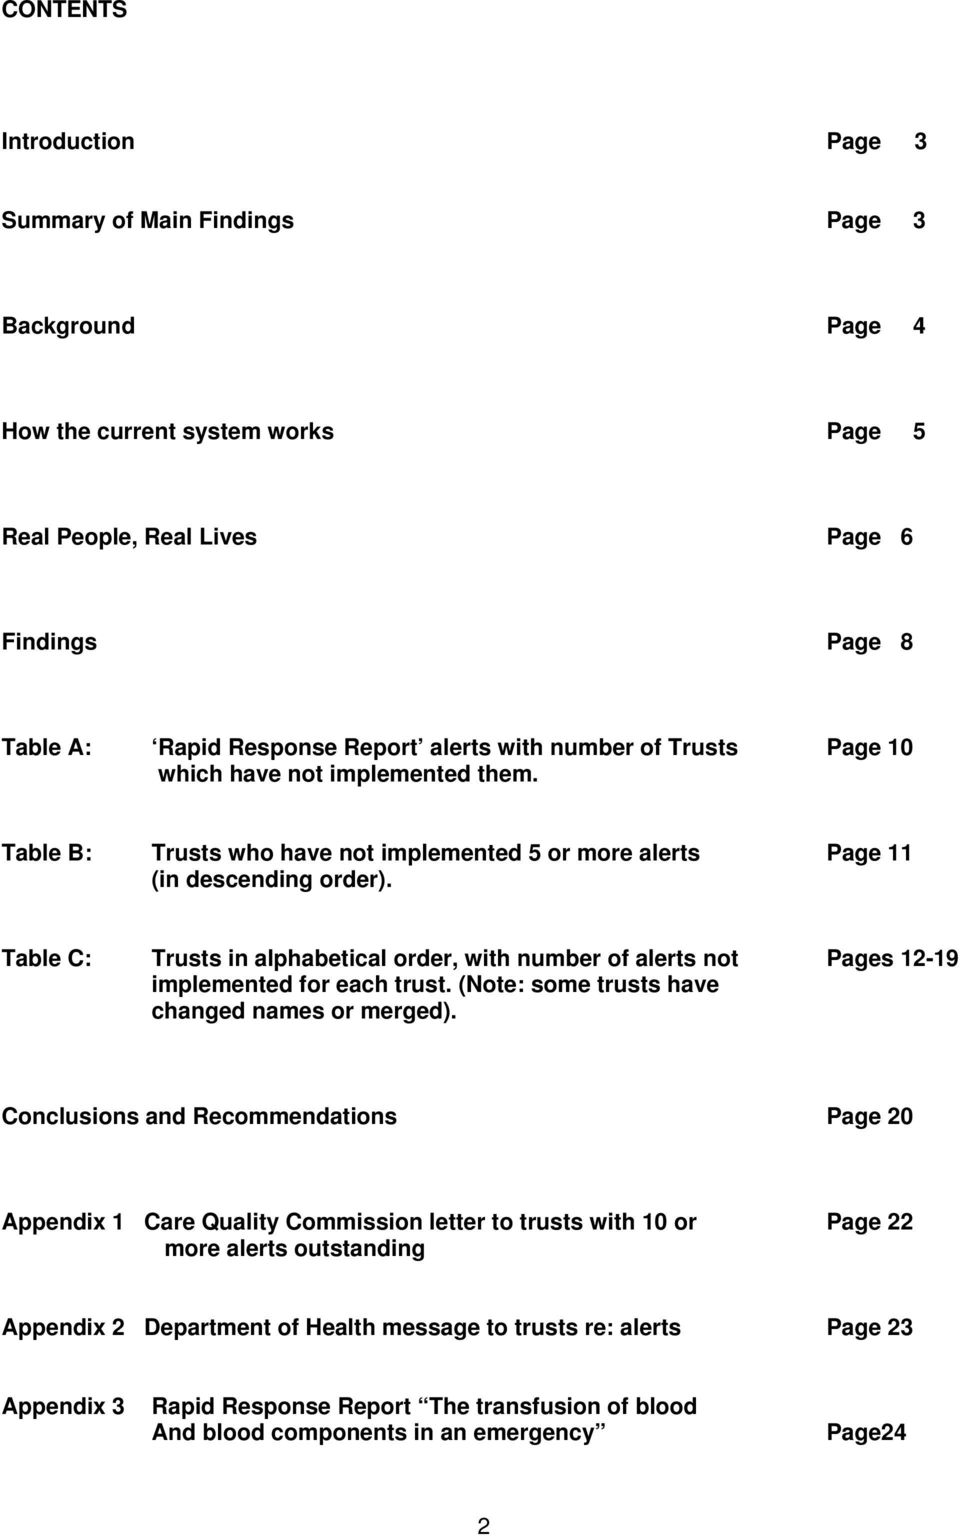 Table C: Trusts in alphabetical order, with number of alerts not Pages 12-19 implemented for each trust. (Note: some trusts have changed names or merged).